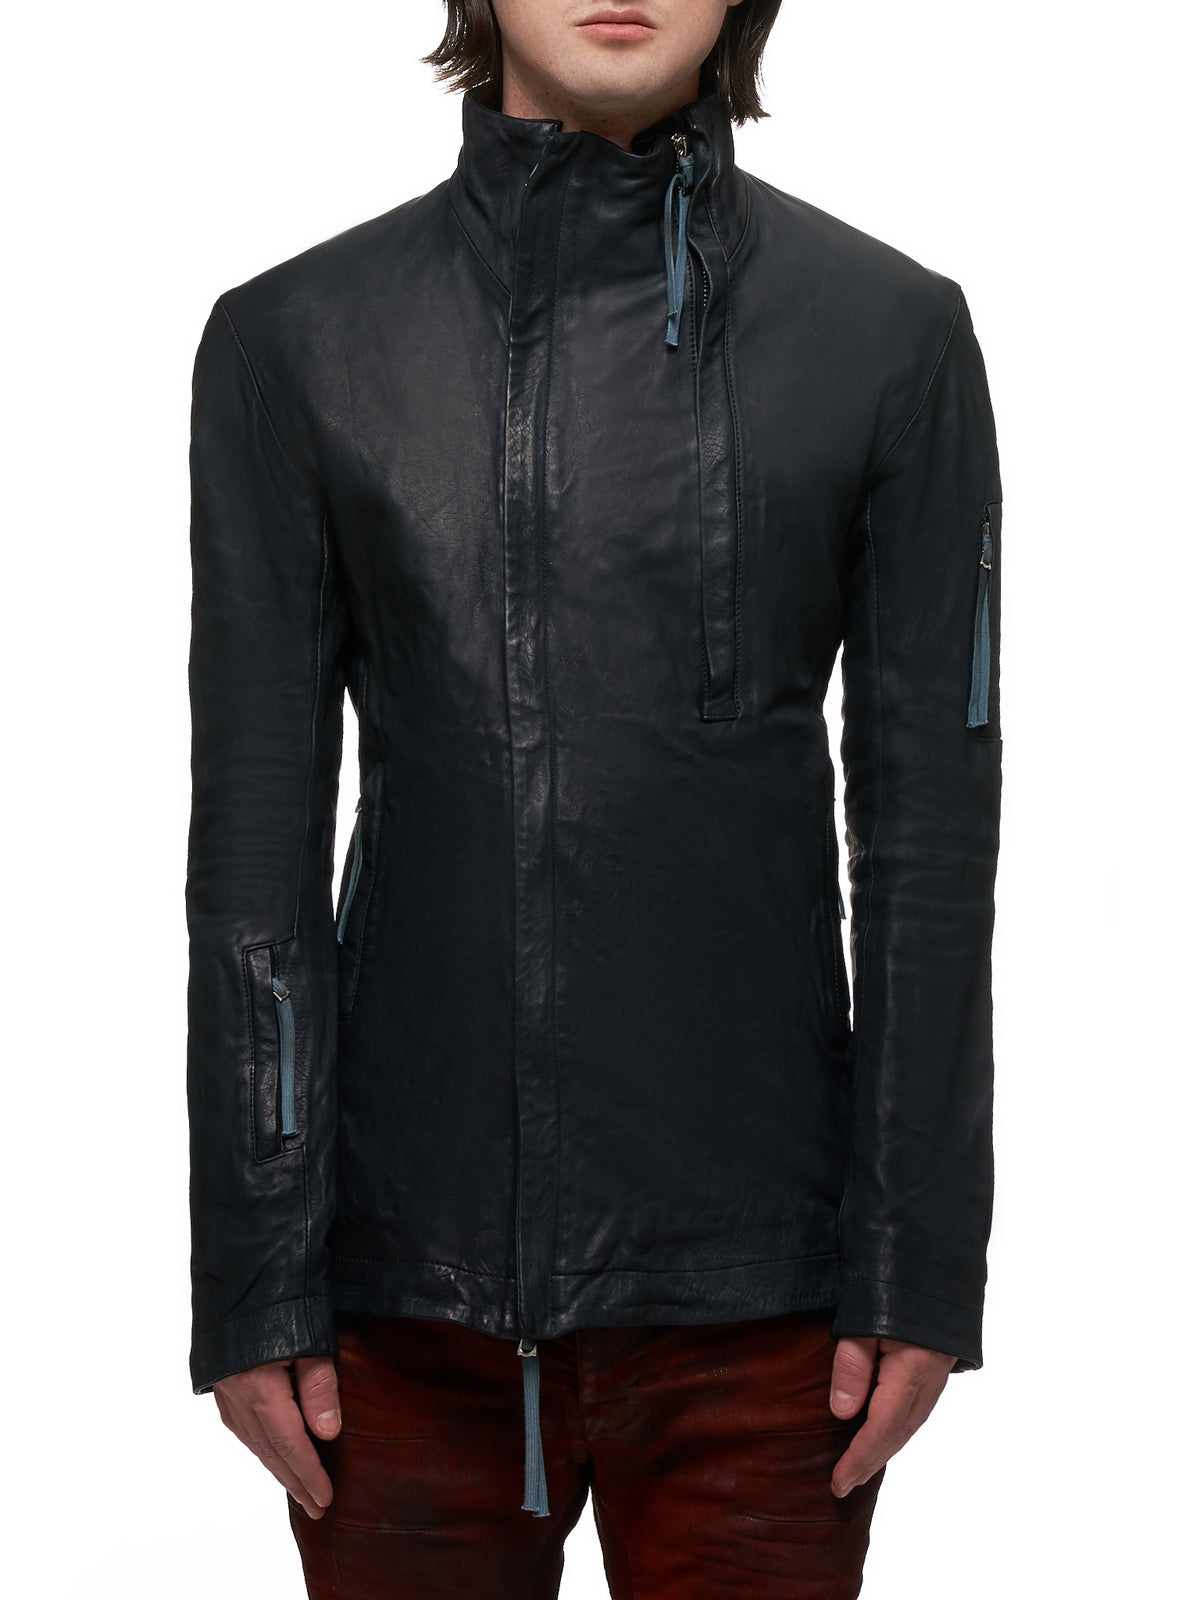 Boris Bidjan Saberi Leather J5 Jacket - Hlorenzo Front